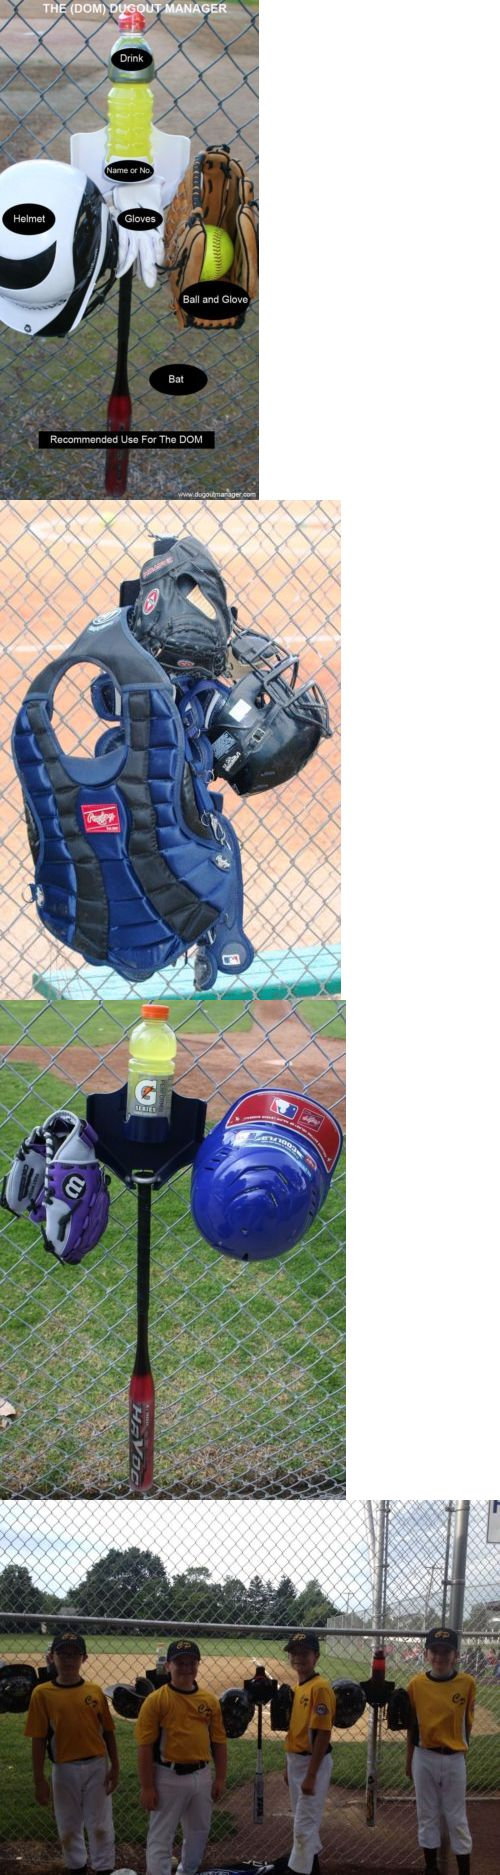 Other Baseball Clothing and Accs 159062: Baseball Dugout Bat Helmet Holder 15 Dom S -> BUY IT NOW ONLY: $339.8 on eBay!